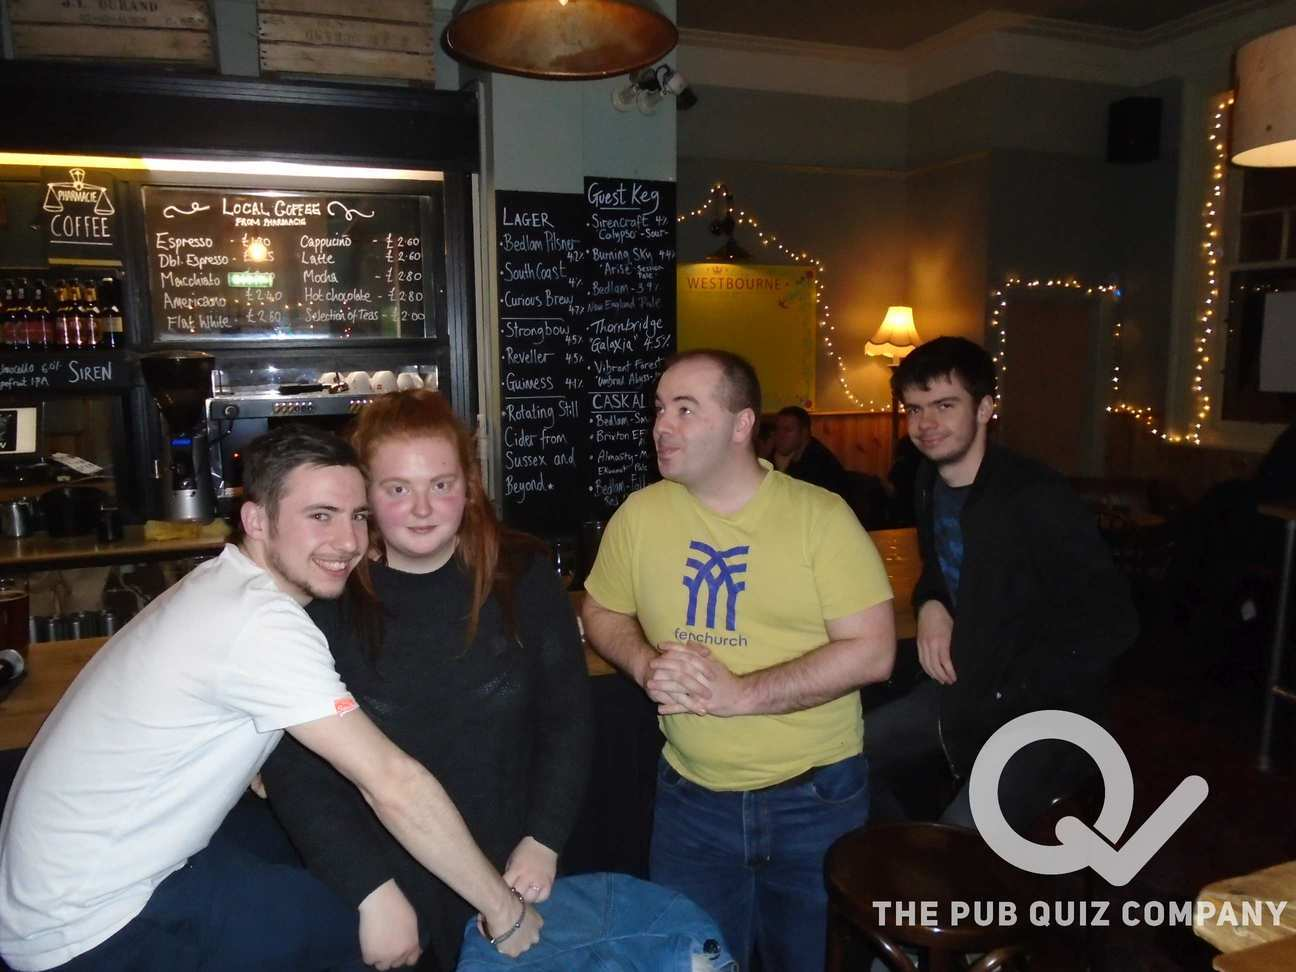 The Westbourne - Tuesday 13th March 2018